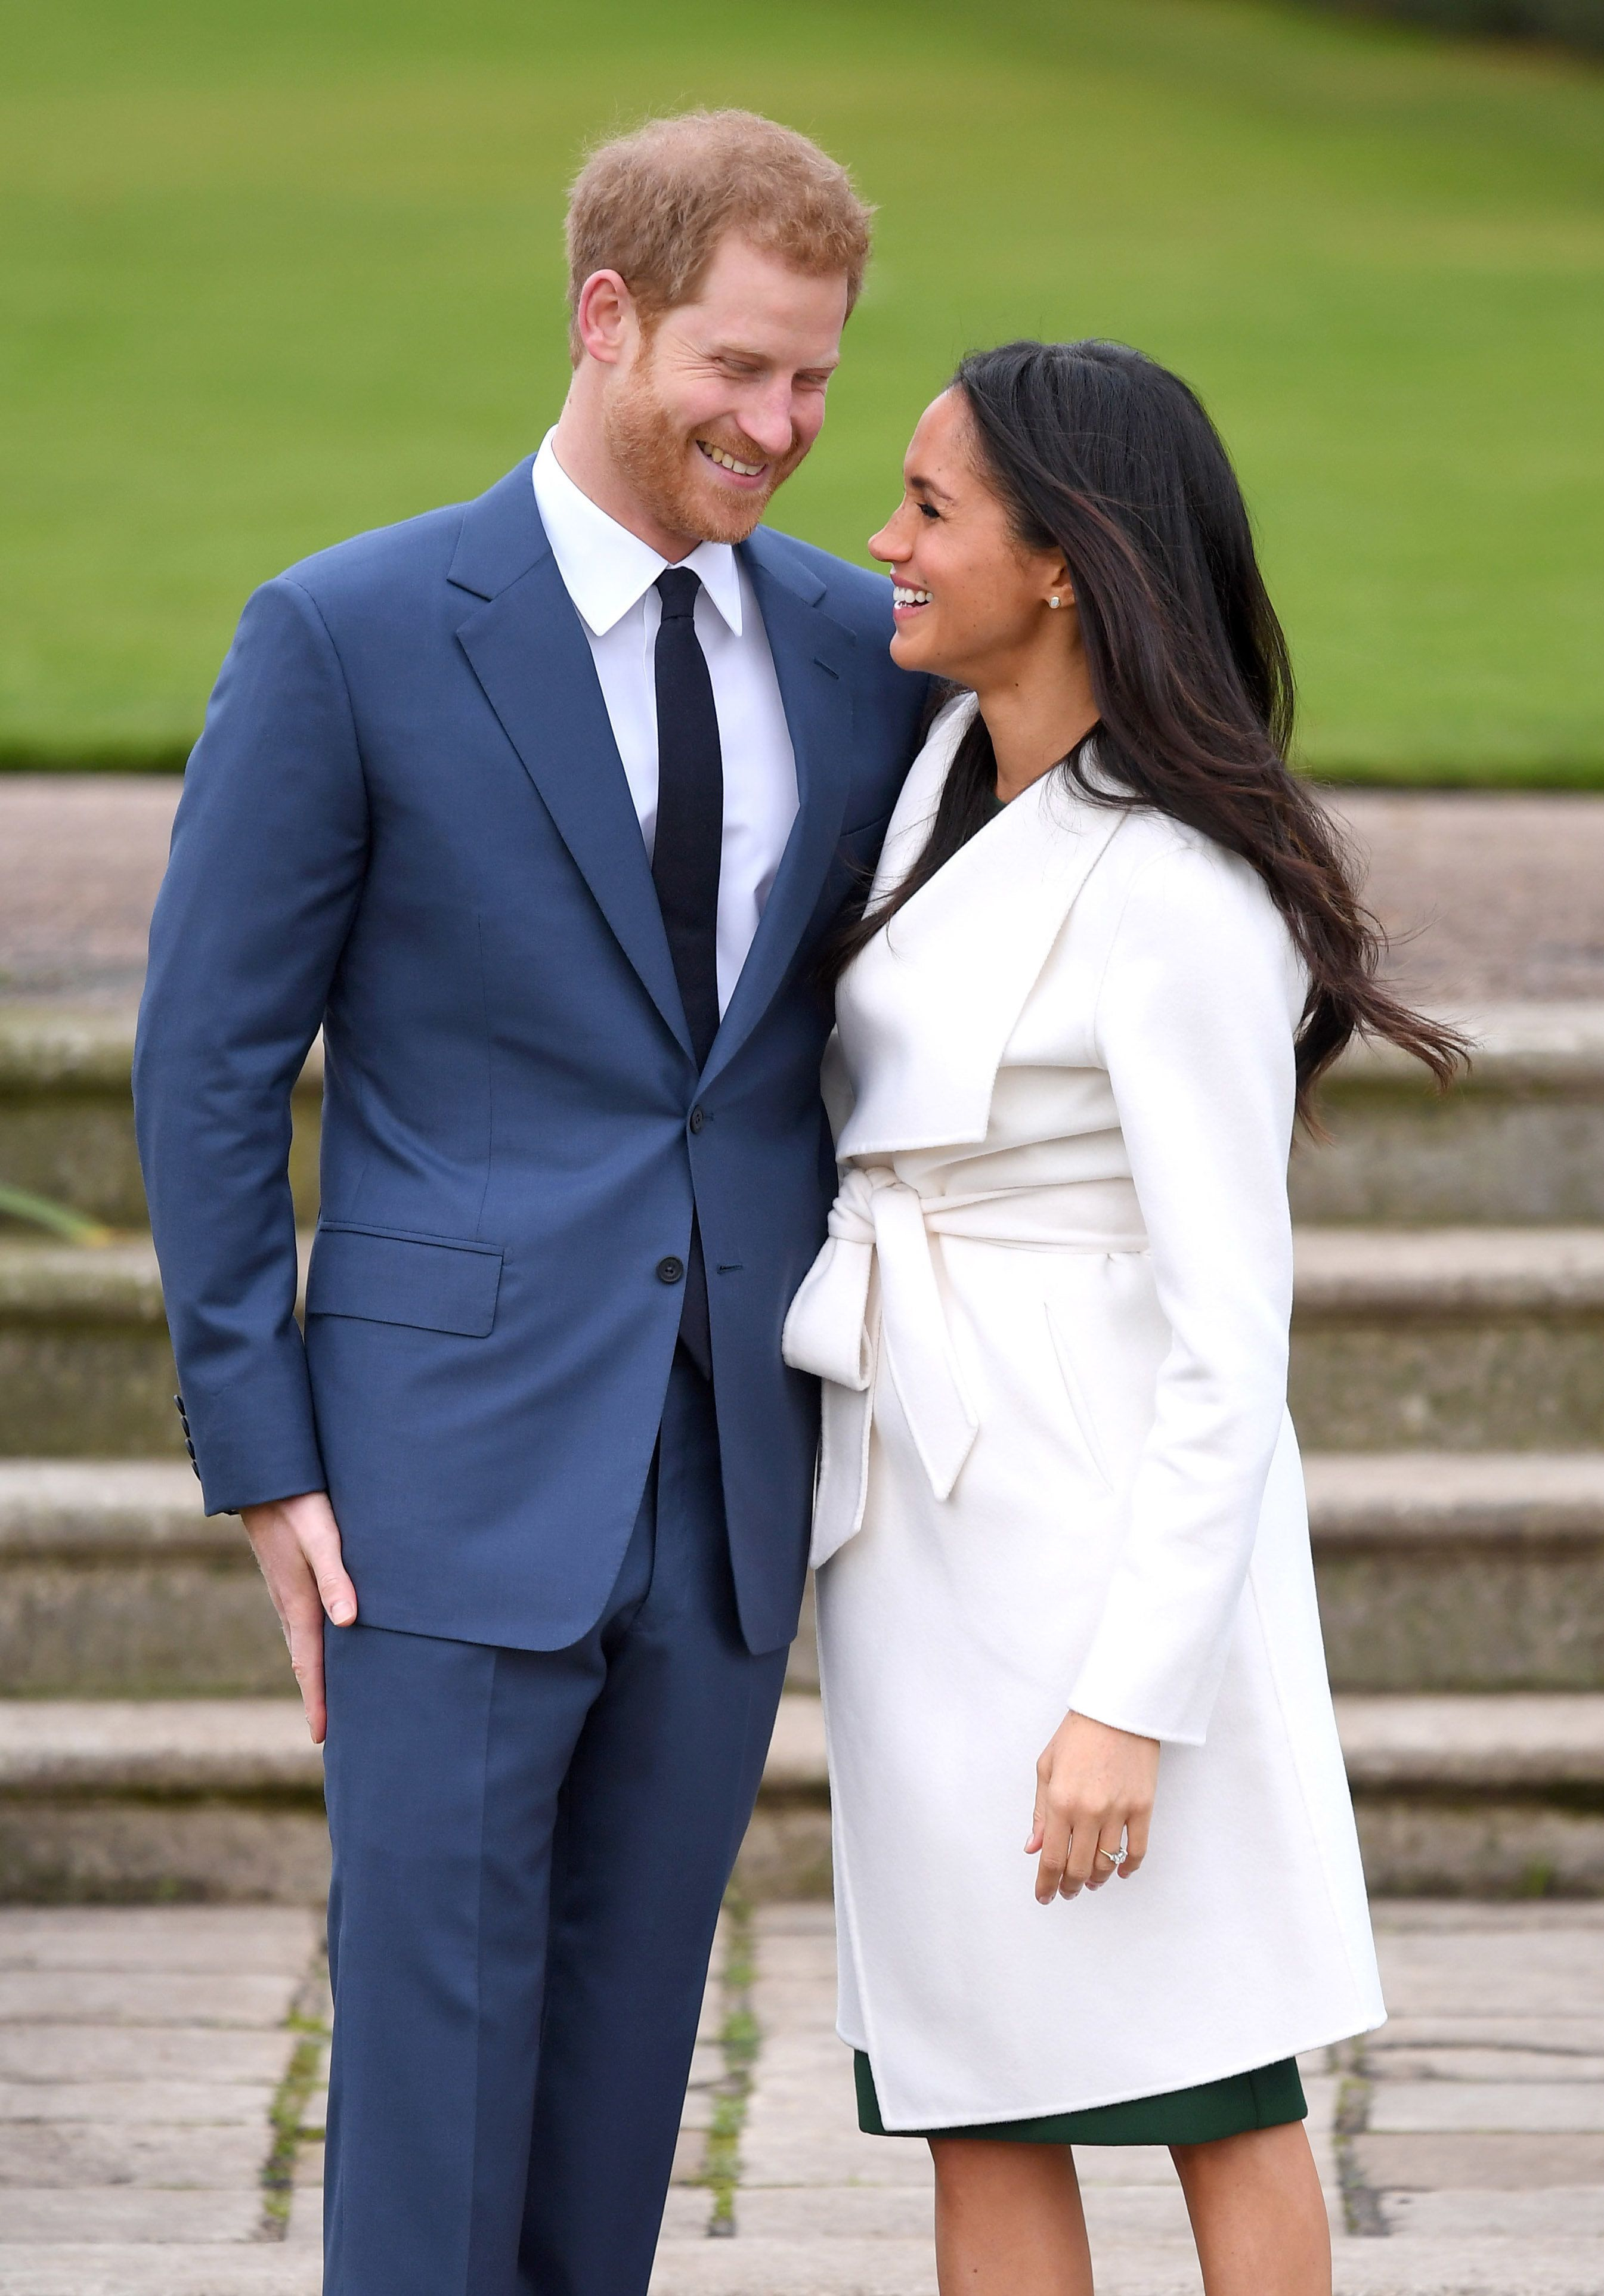 Meghan Markle's Father, Who Has Never Met Prince Harry, Will Walk Her Down The